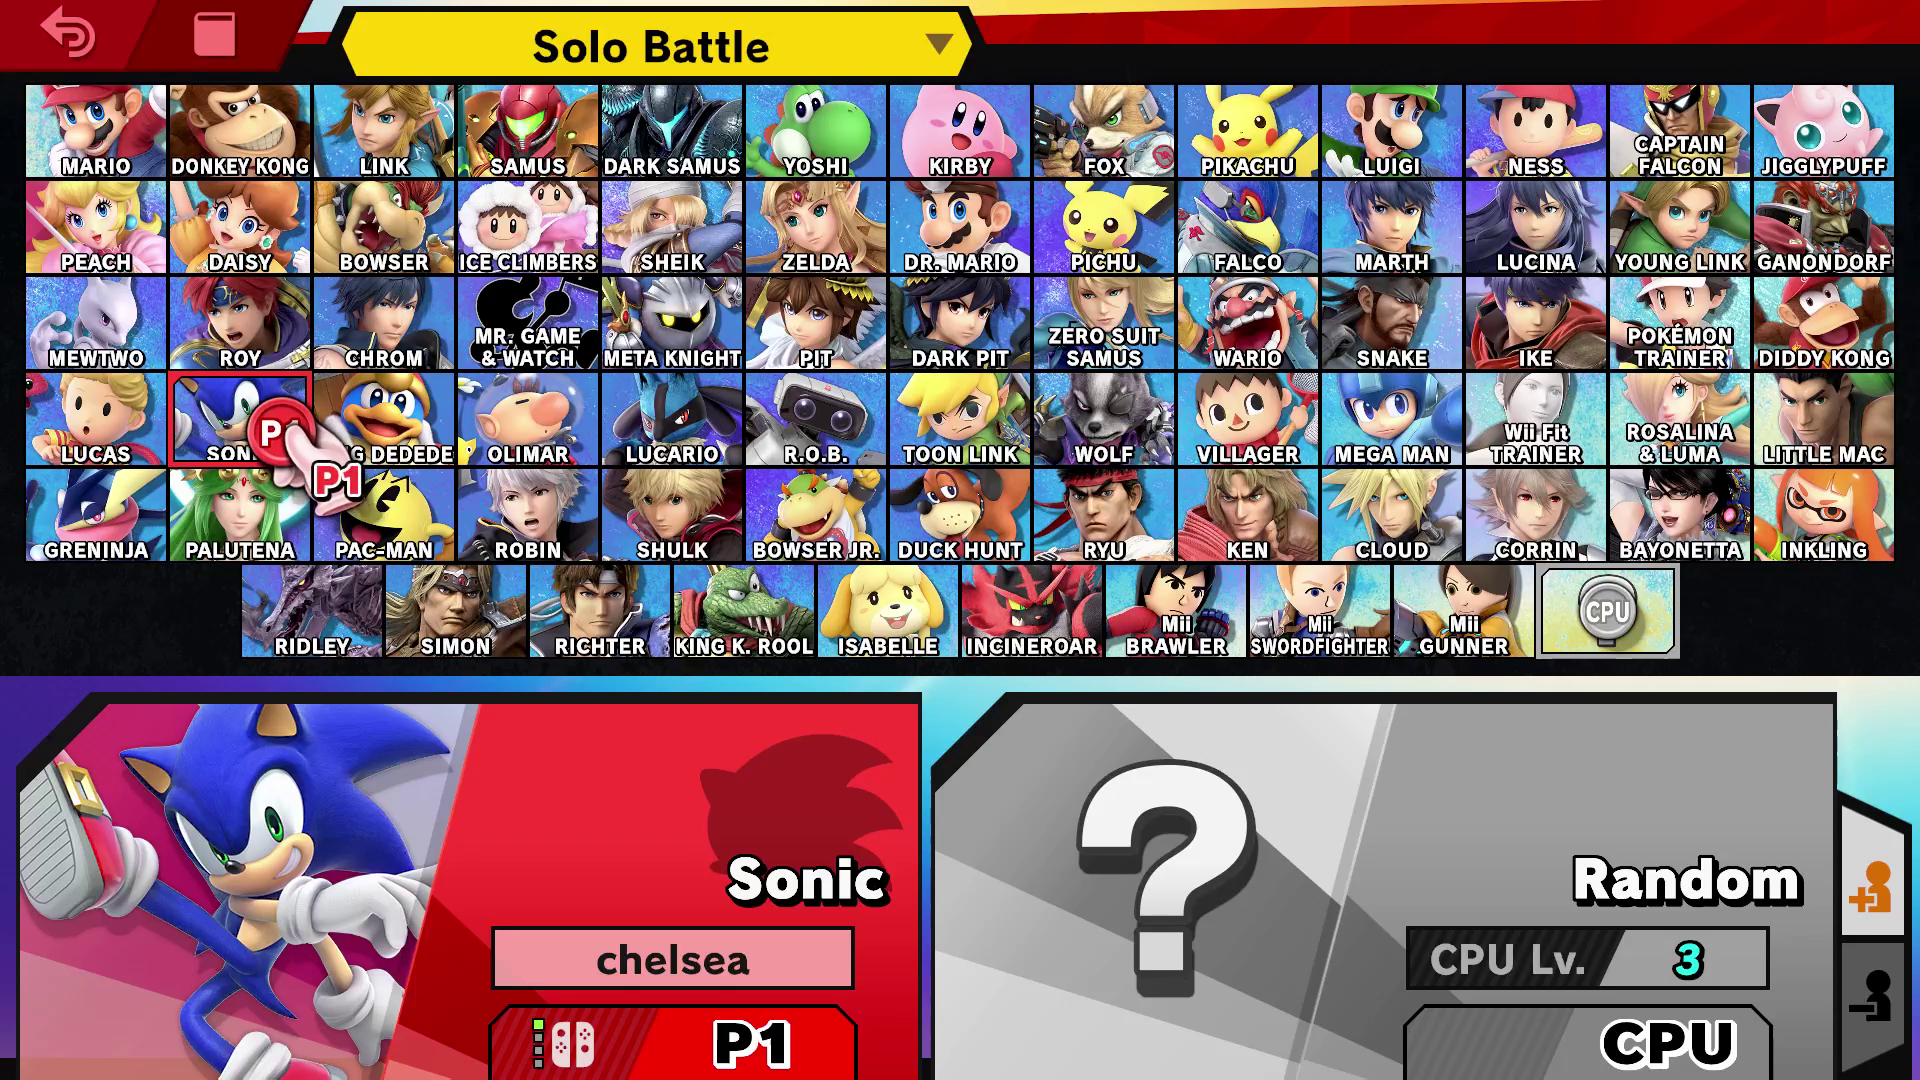 Super Smash Bros. Ultimate - full playable character roster